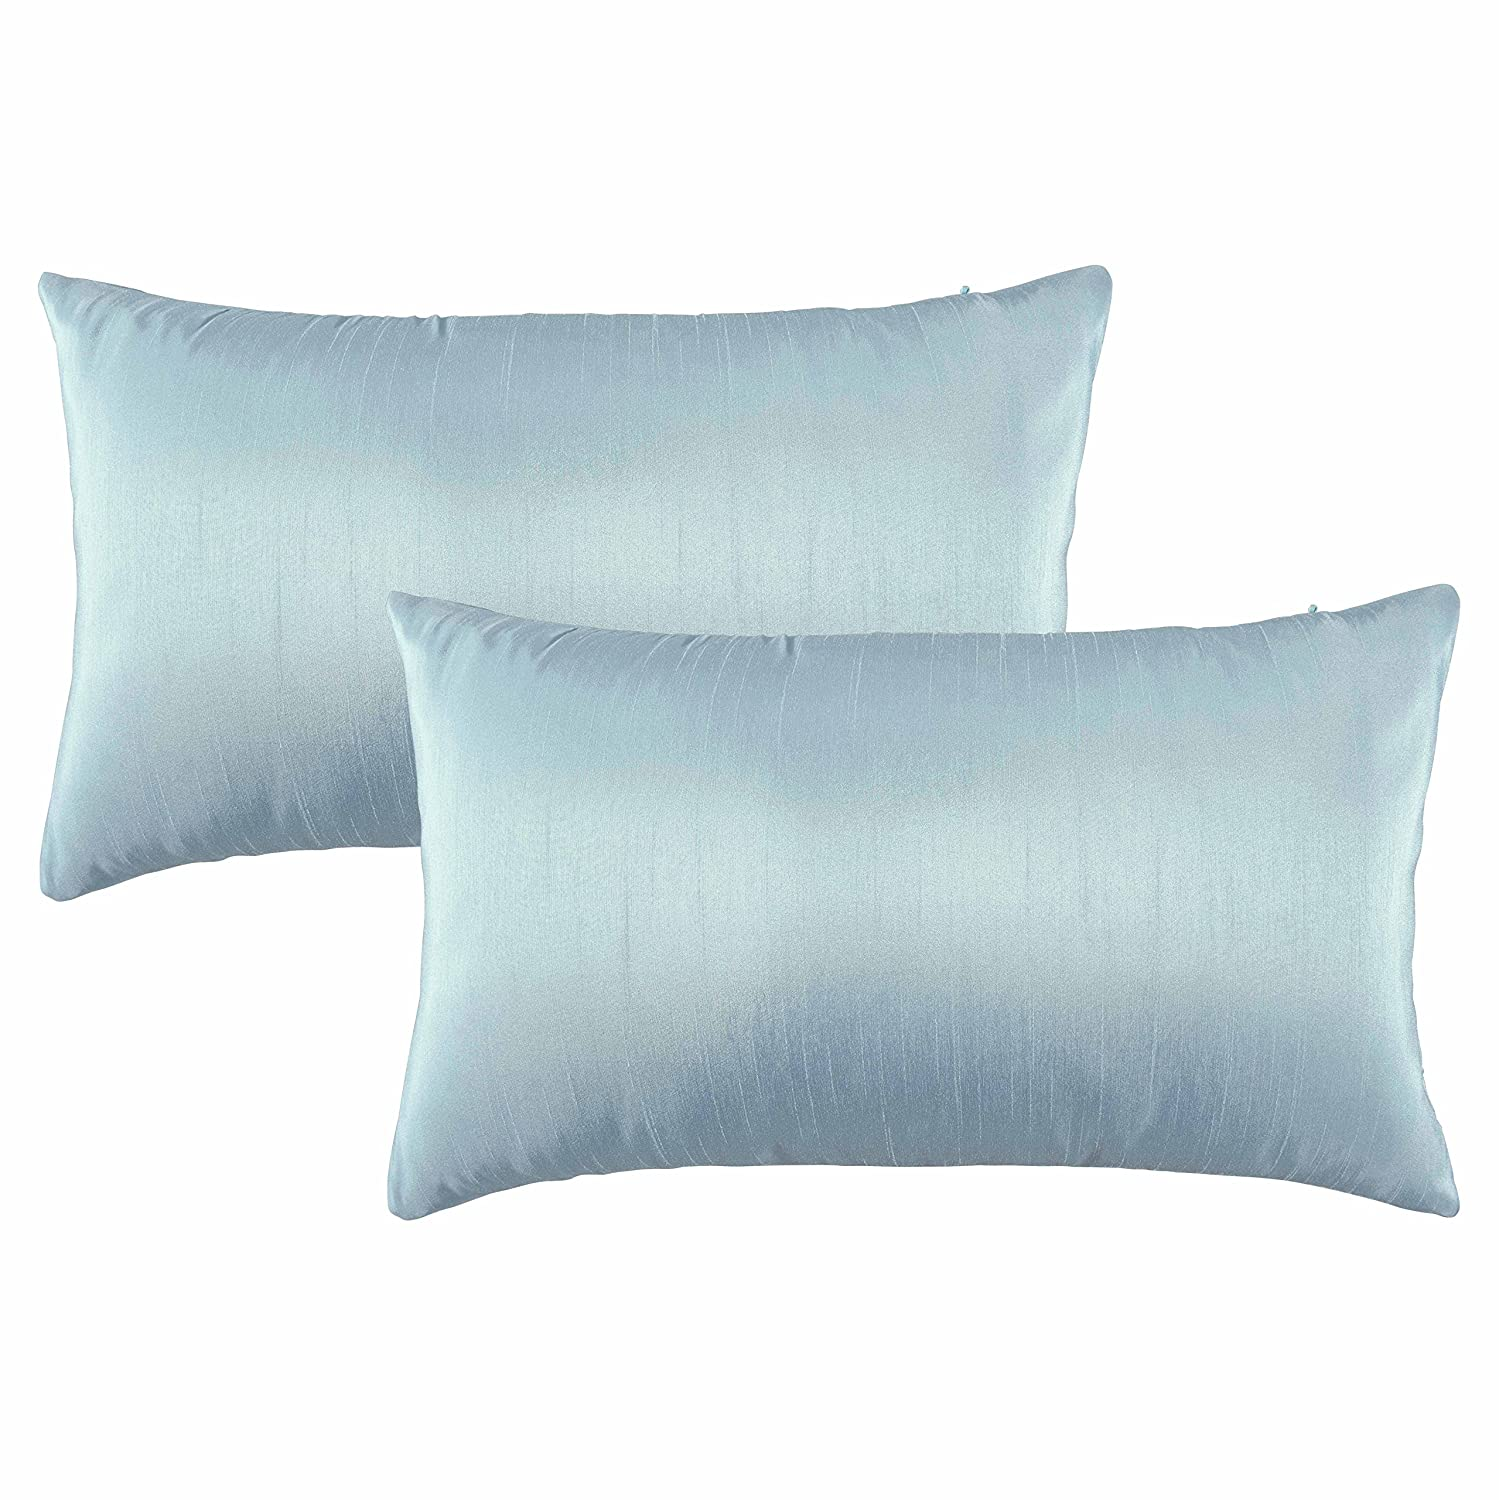 547d189e89c Pony Dance Luxurious Faux Slik Home Decorative Rectangle Throw Pillow Covers  Handmade Pillowcases Cushion Covers Shells for Bed,Sky Blue,12 by 20 Inch, Set ...